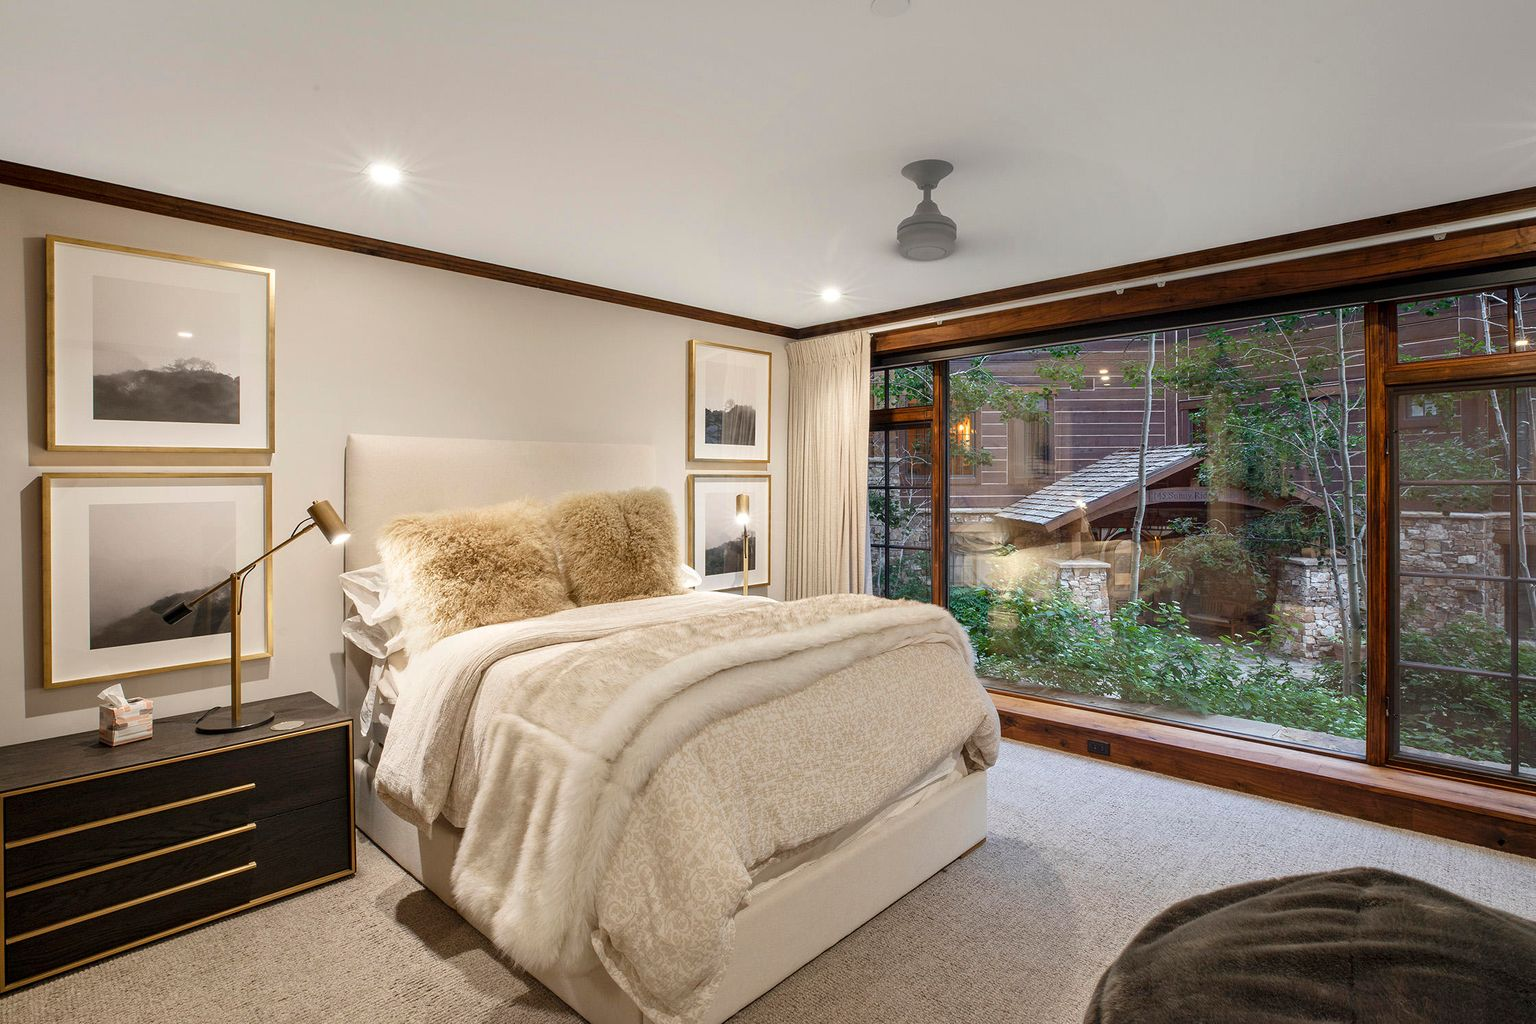 bedroom in a modern vail residence listed for sale at 117 sunny ridge place